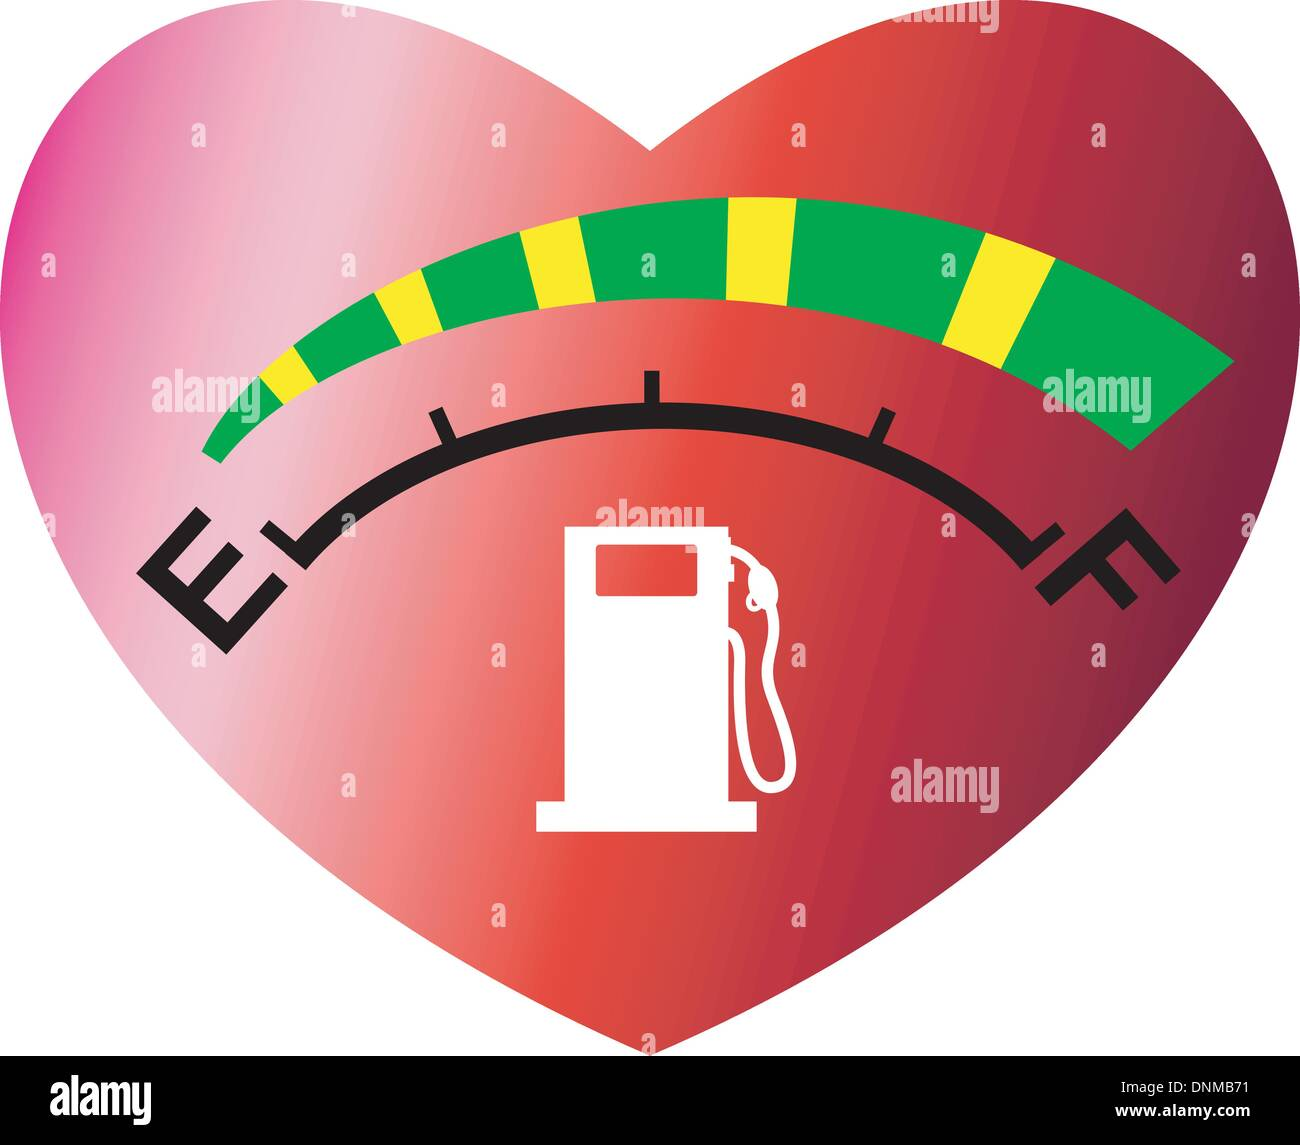 Illustration of a fuel gage meter showing empty to full set inside illustration of a fuel gage meter showing empty to full set inside heart shape on isolated white background ccuart Choice Image